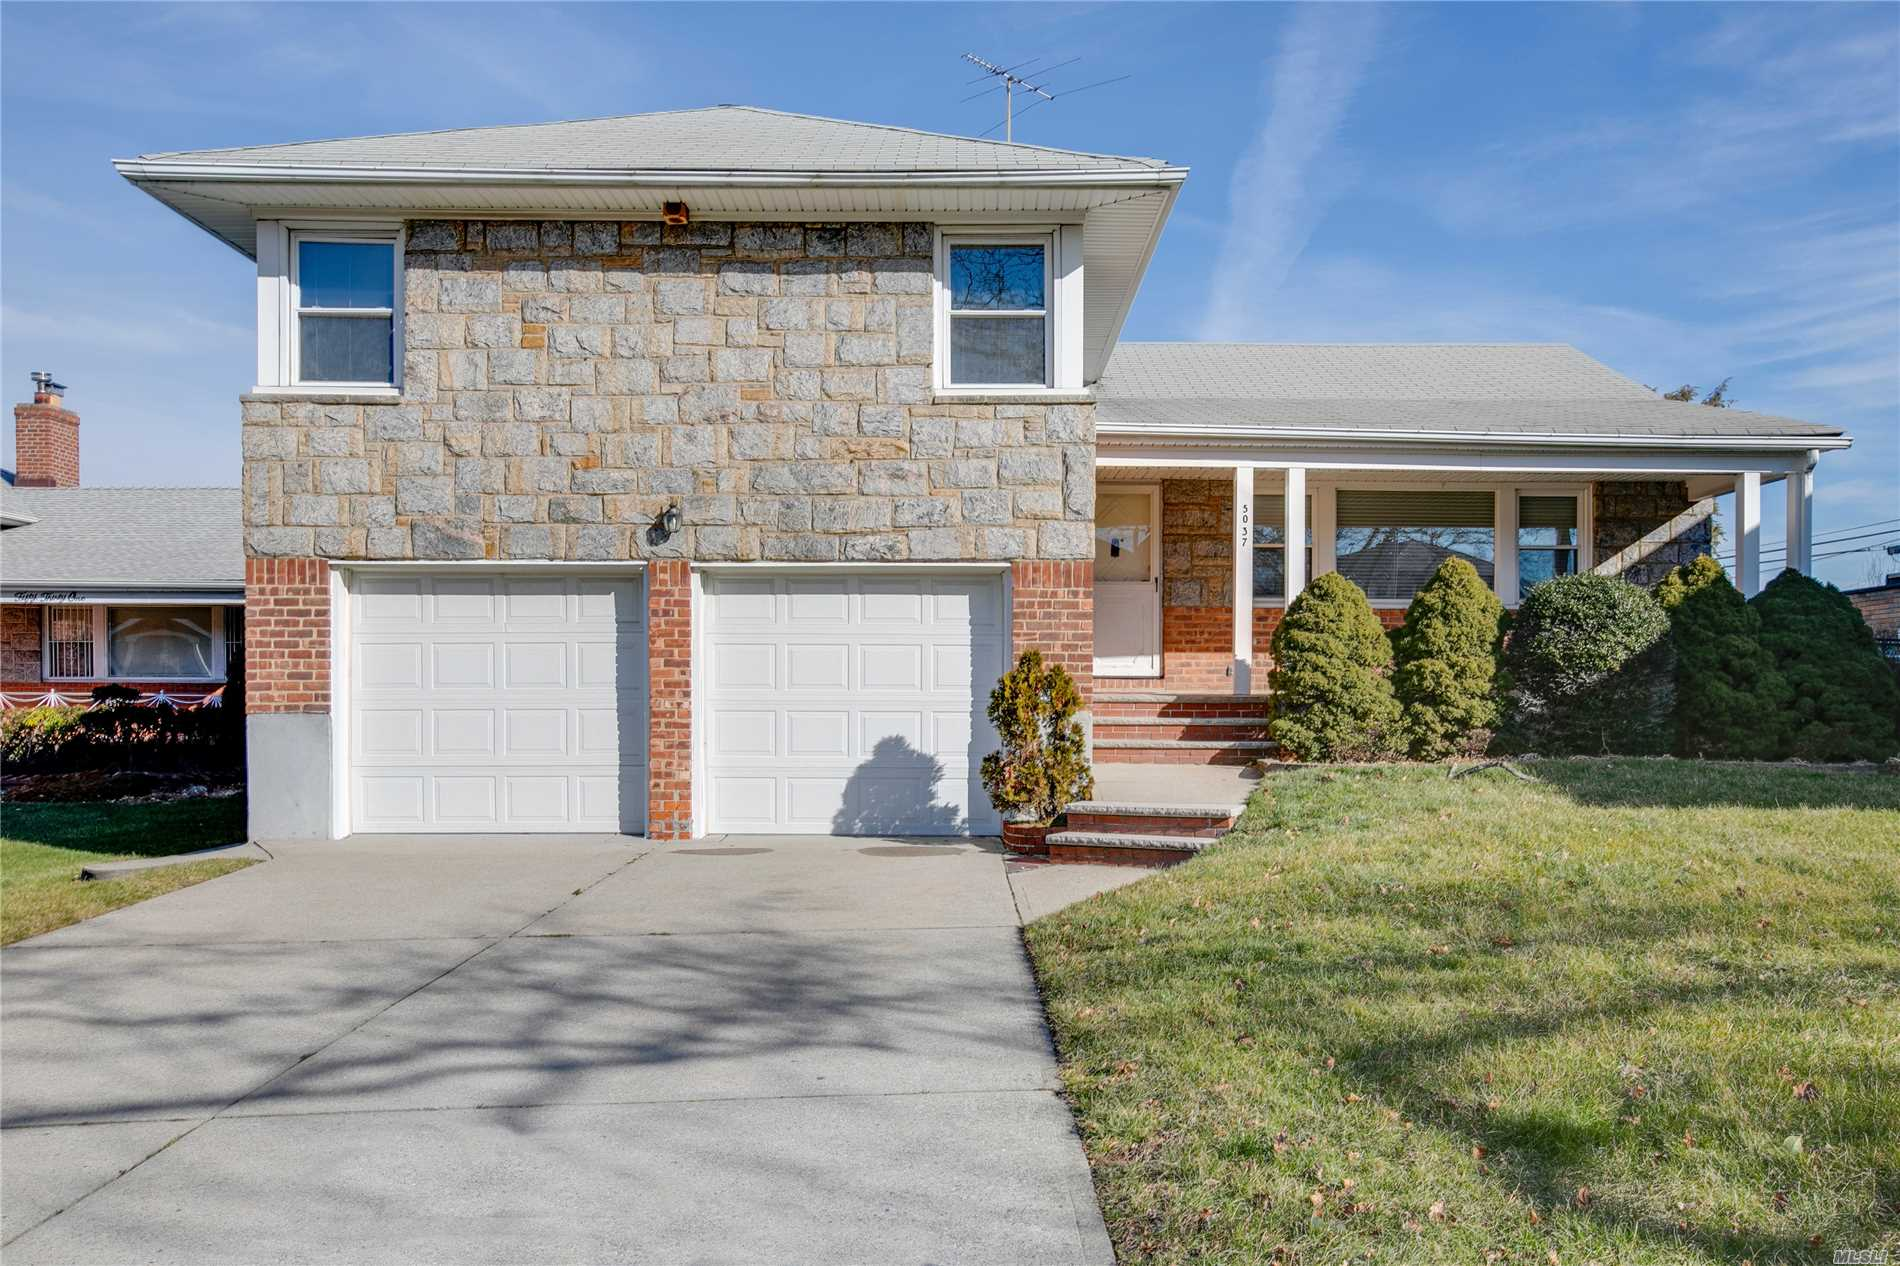 Beautiful 4 Level Split House, Large Lot 66.5' X 150' , Building Size 45X41.33, Prime Bayside-Oakland Gardens Location! It Features: 3 Bedrooms, 2.5 Bathrooms. Spacious Living Rm & Formal Dining Rm, Eat In Kitchen, Lower Level Family Rm. W/Working Fireplace, 2 Car Garages. Finished Bsmnt, Lots Of Storage, In Ground Sprinkler, Beautiful Back Yard. Near Parks, Shops, Major Highways, Excellent School District #26. Ps203, Cardozo High School. (Potential To Rebuilt Giant Mansion W/Plan).